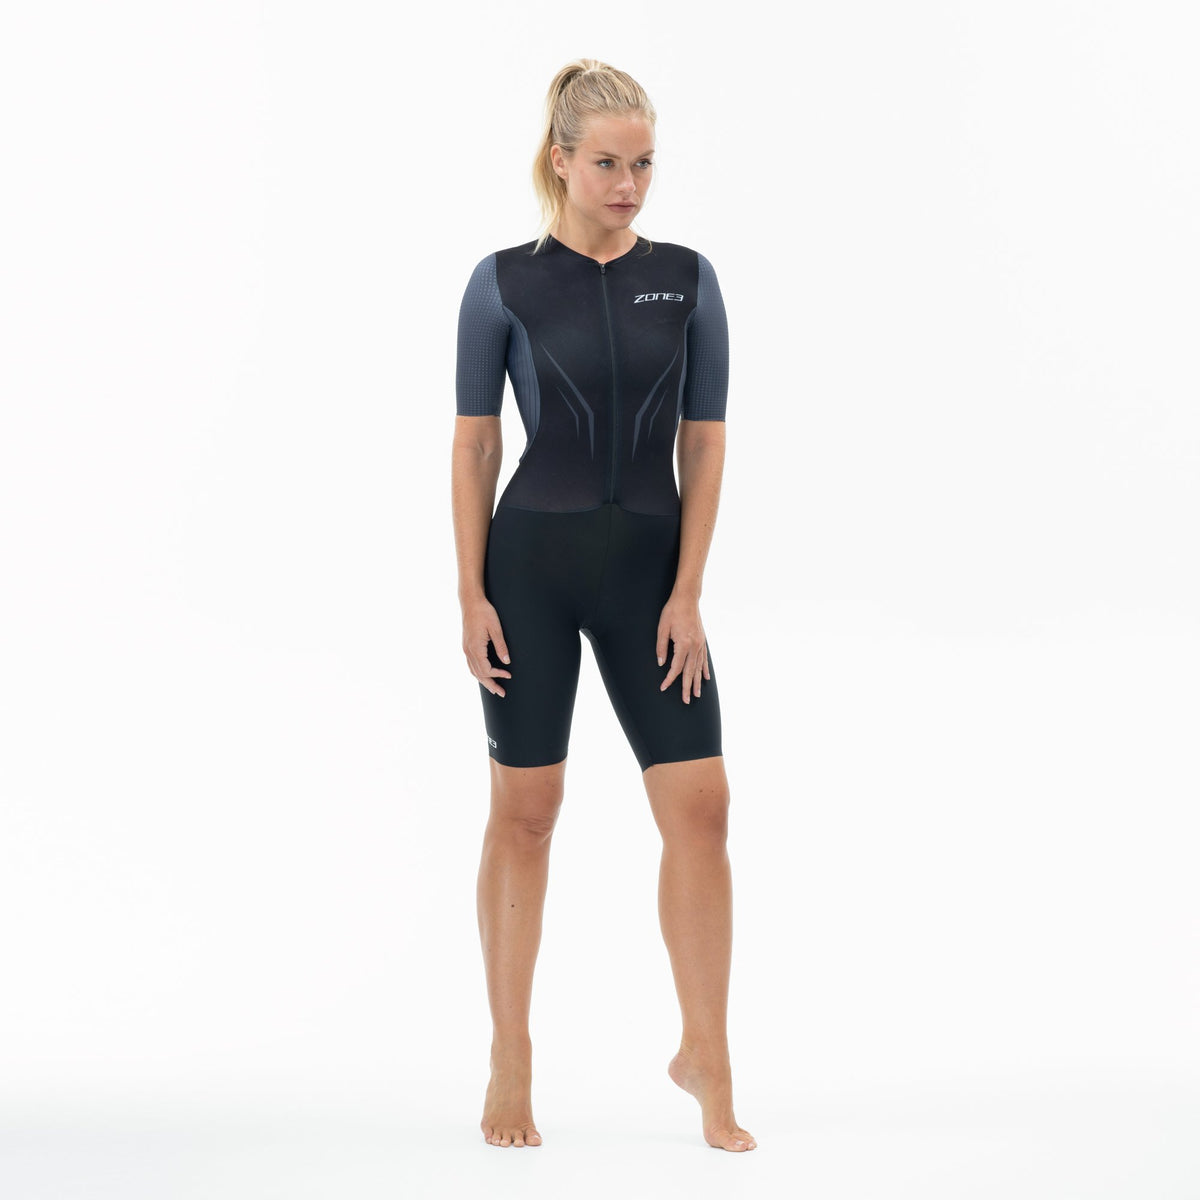 Women's Aeroforce-X Trisuit